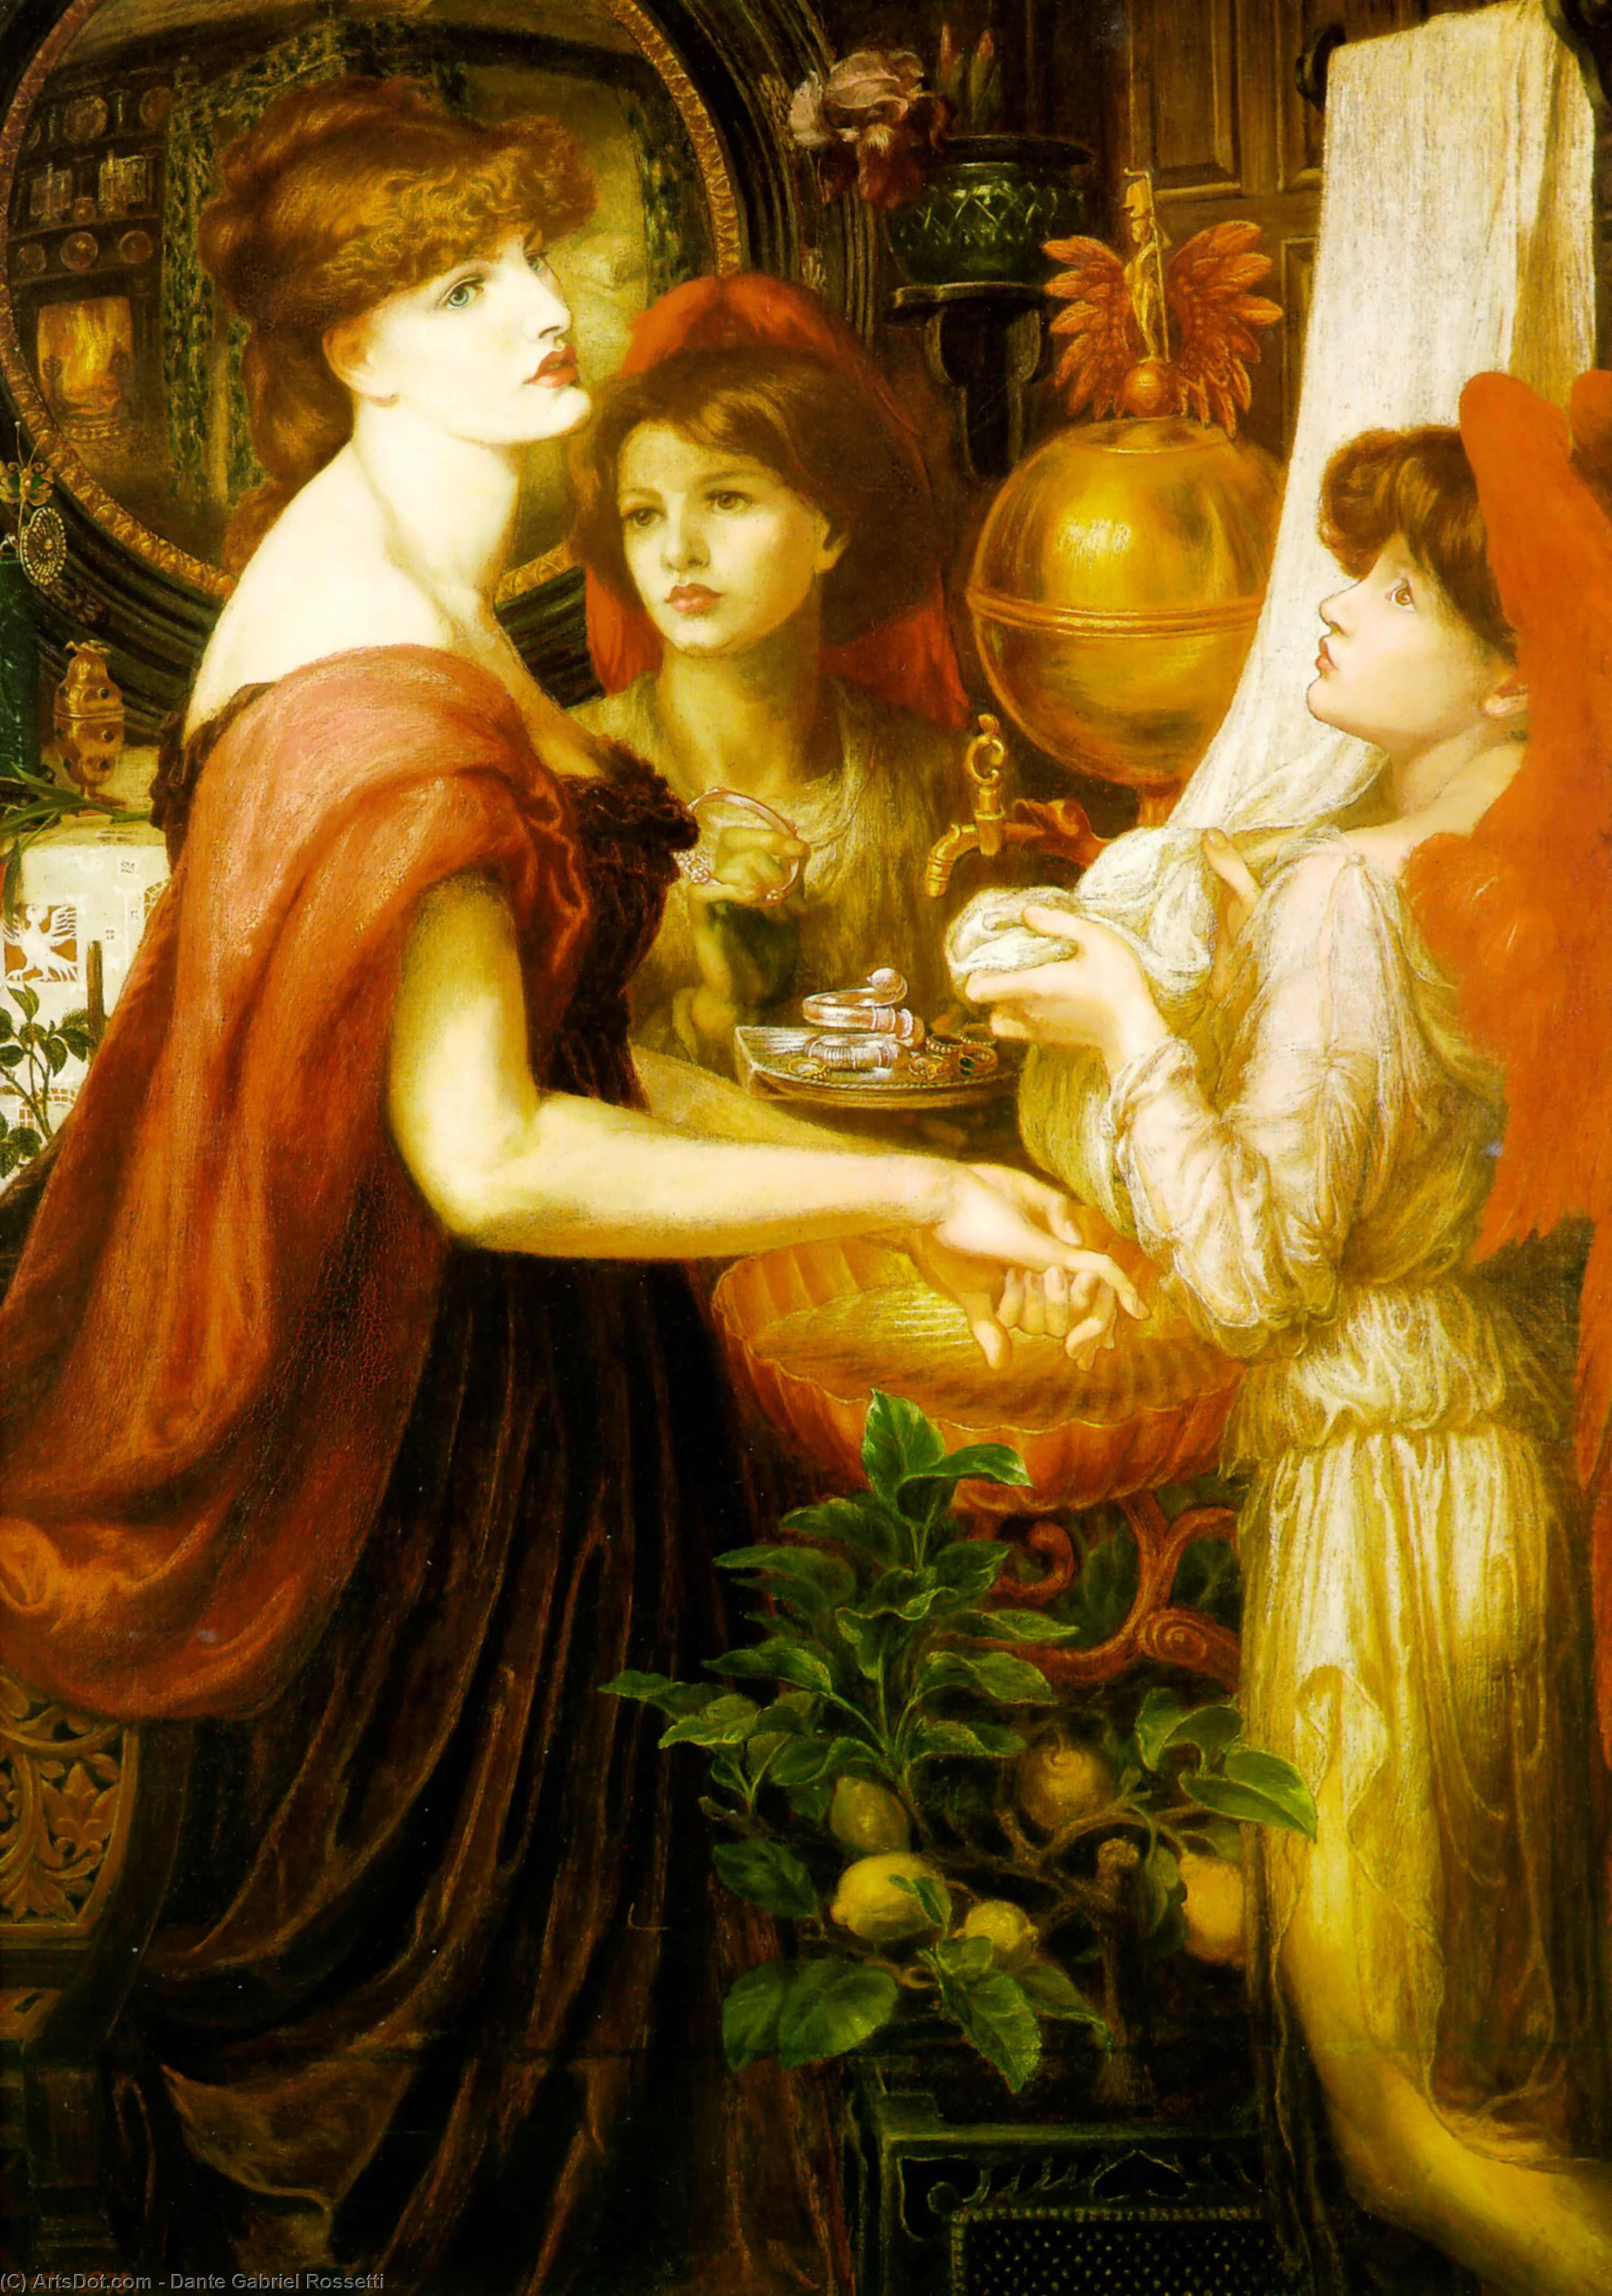 La Bella Mano, Oil On Canvas by Dante Gabriel Rossetti (1828-1882, United Kingdom)